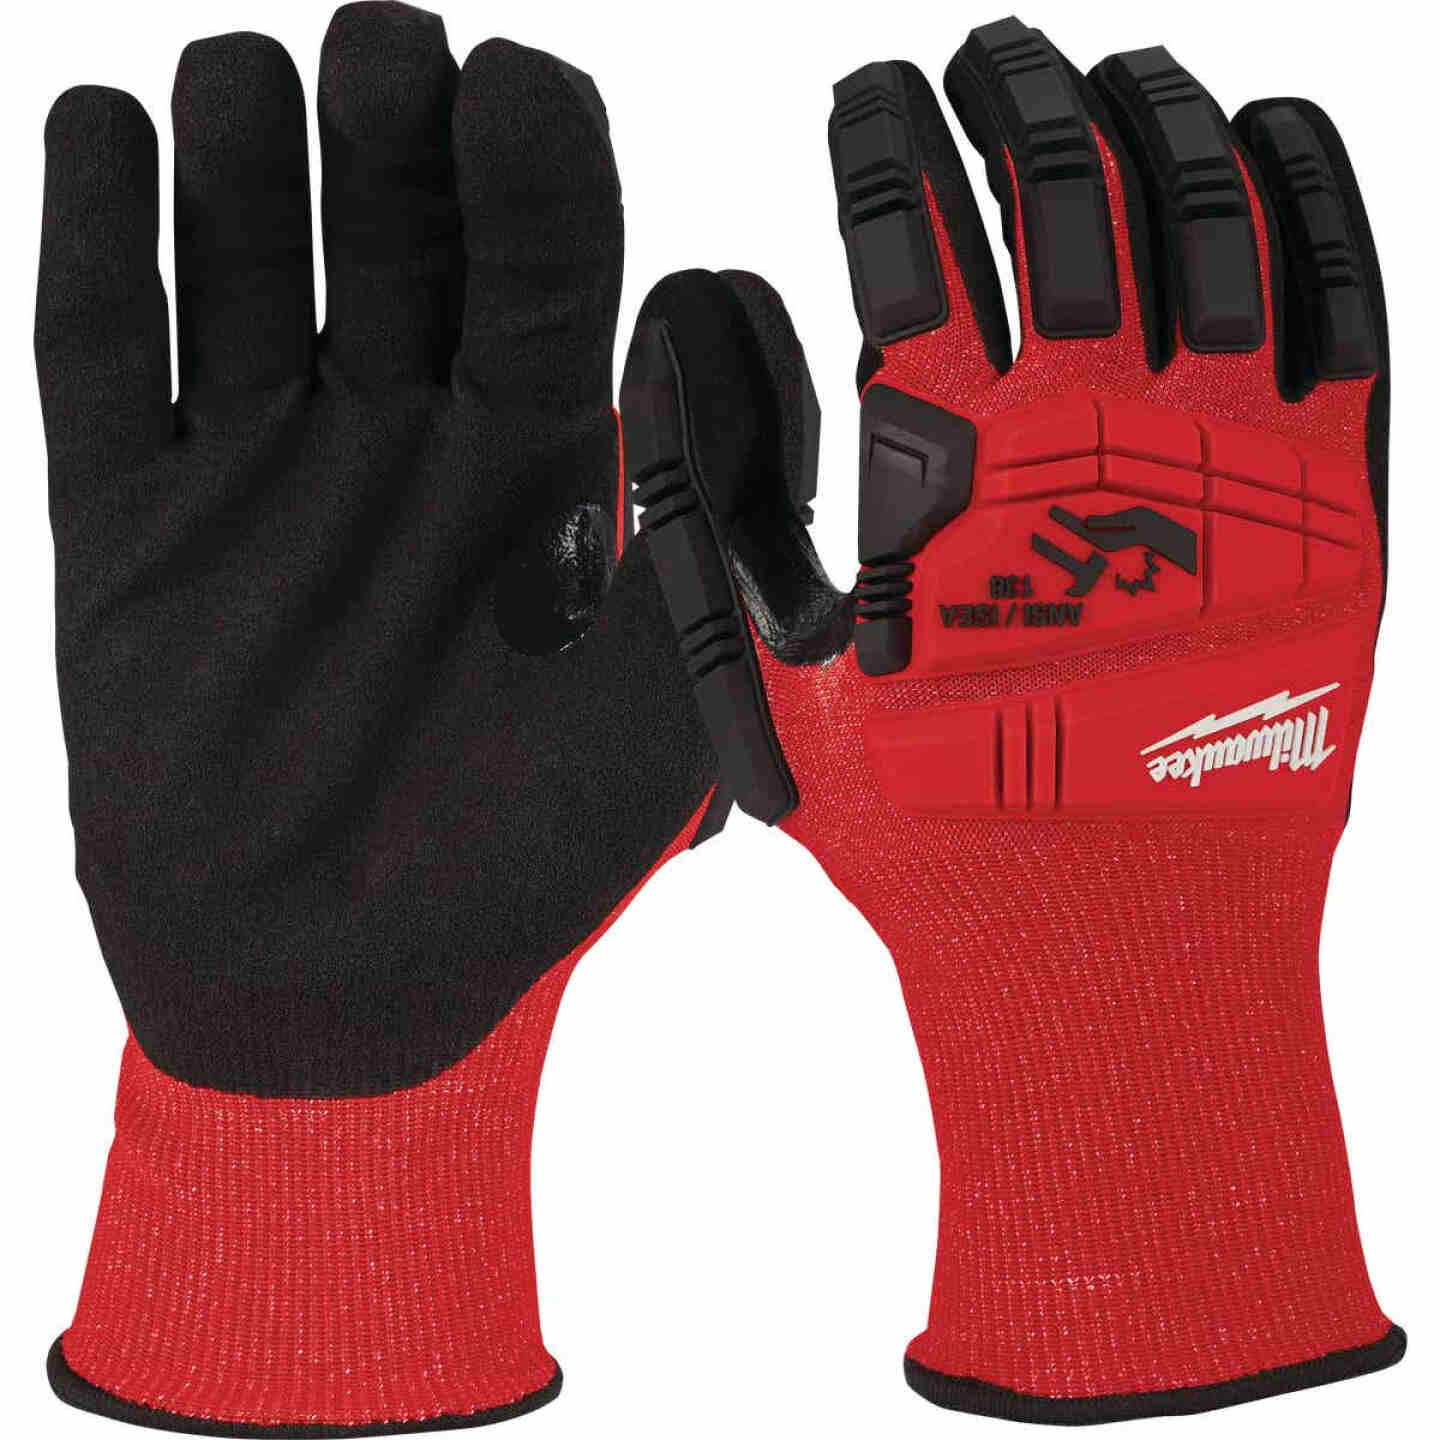 Milwaukee Impact Cut Level 3 XL Men's Nitrile Dipped Work Gloves Image 3